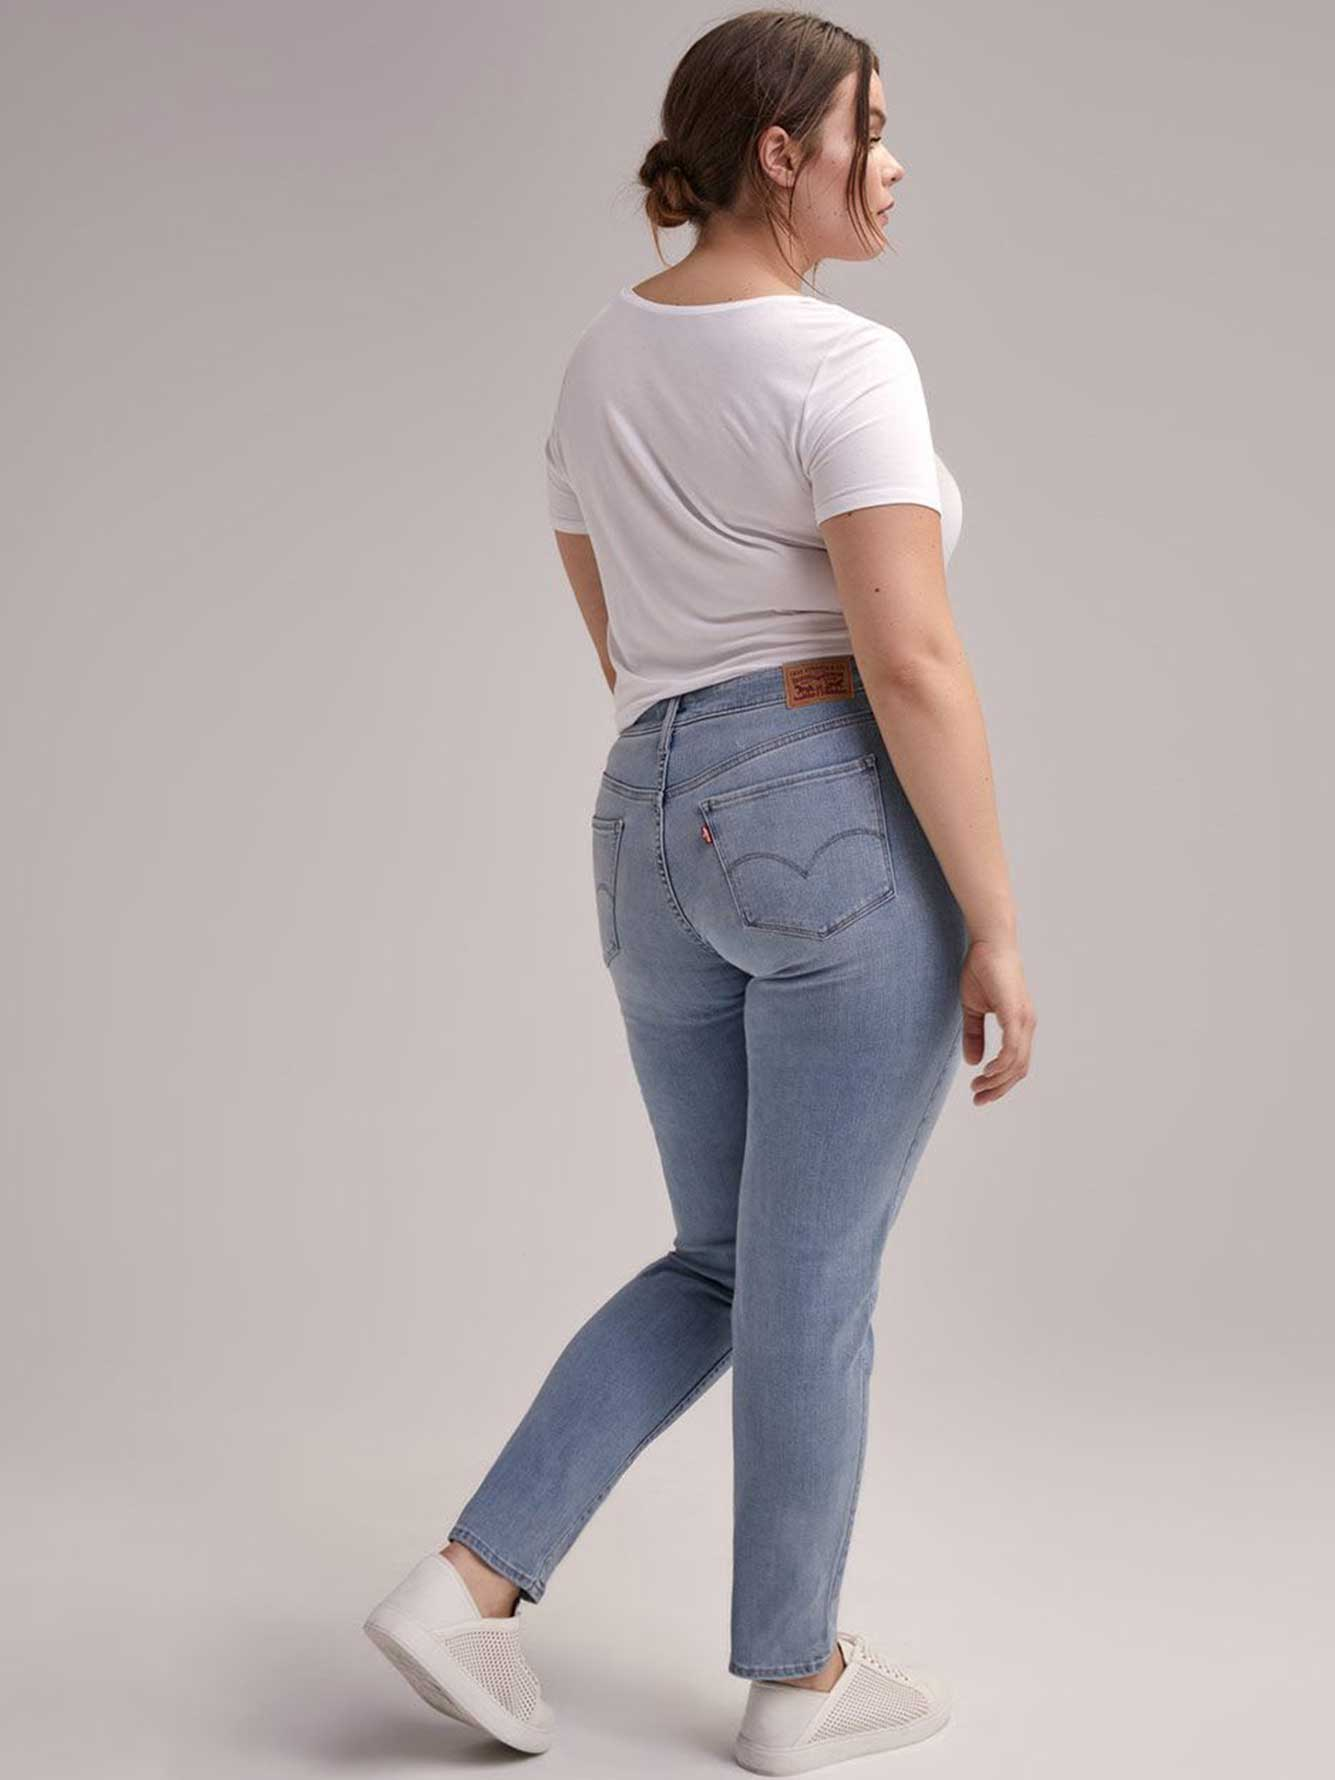 Levi's Jeans Skinny Elle 311 Addition Shaping RwqxRznr74